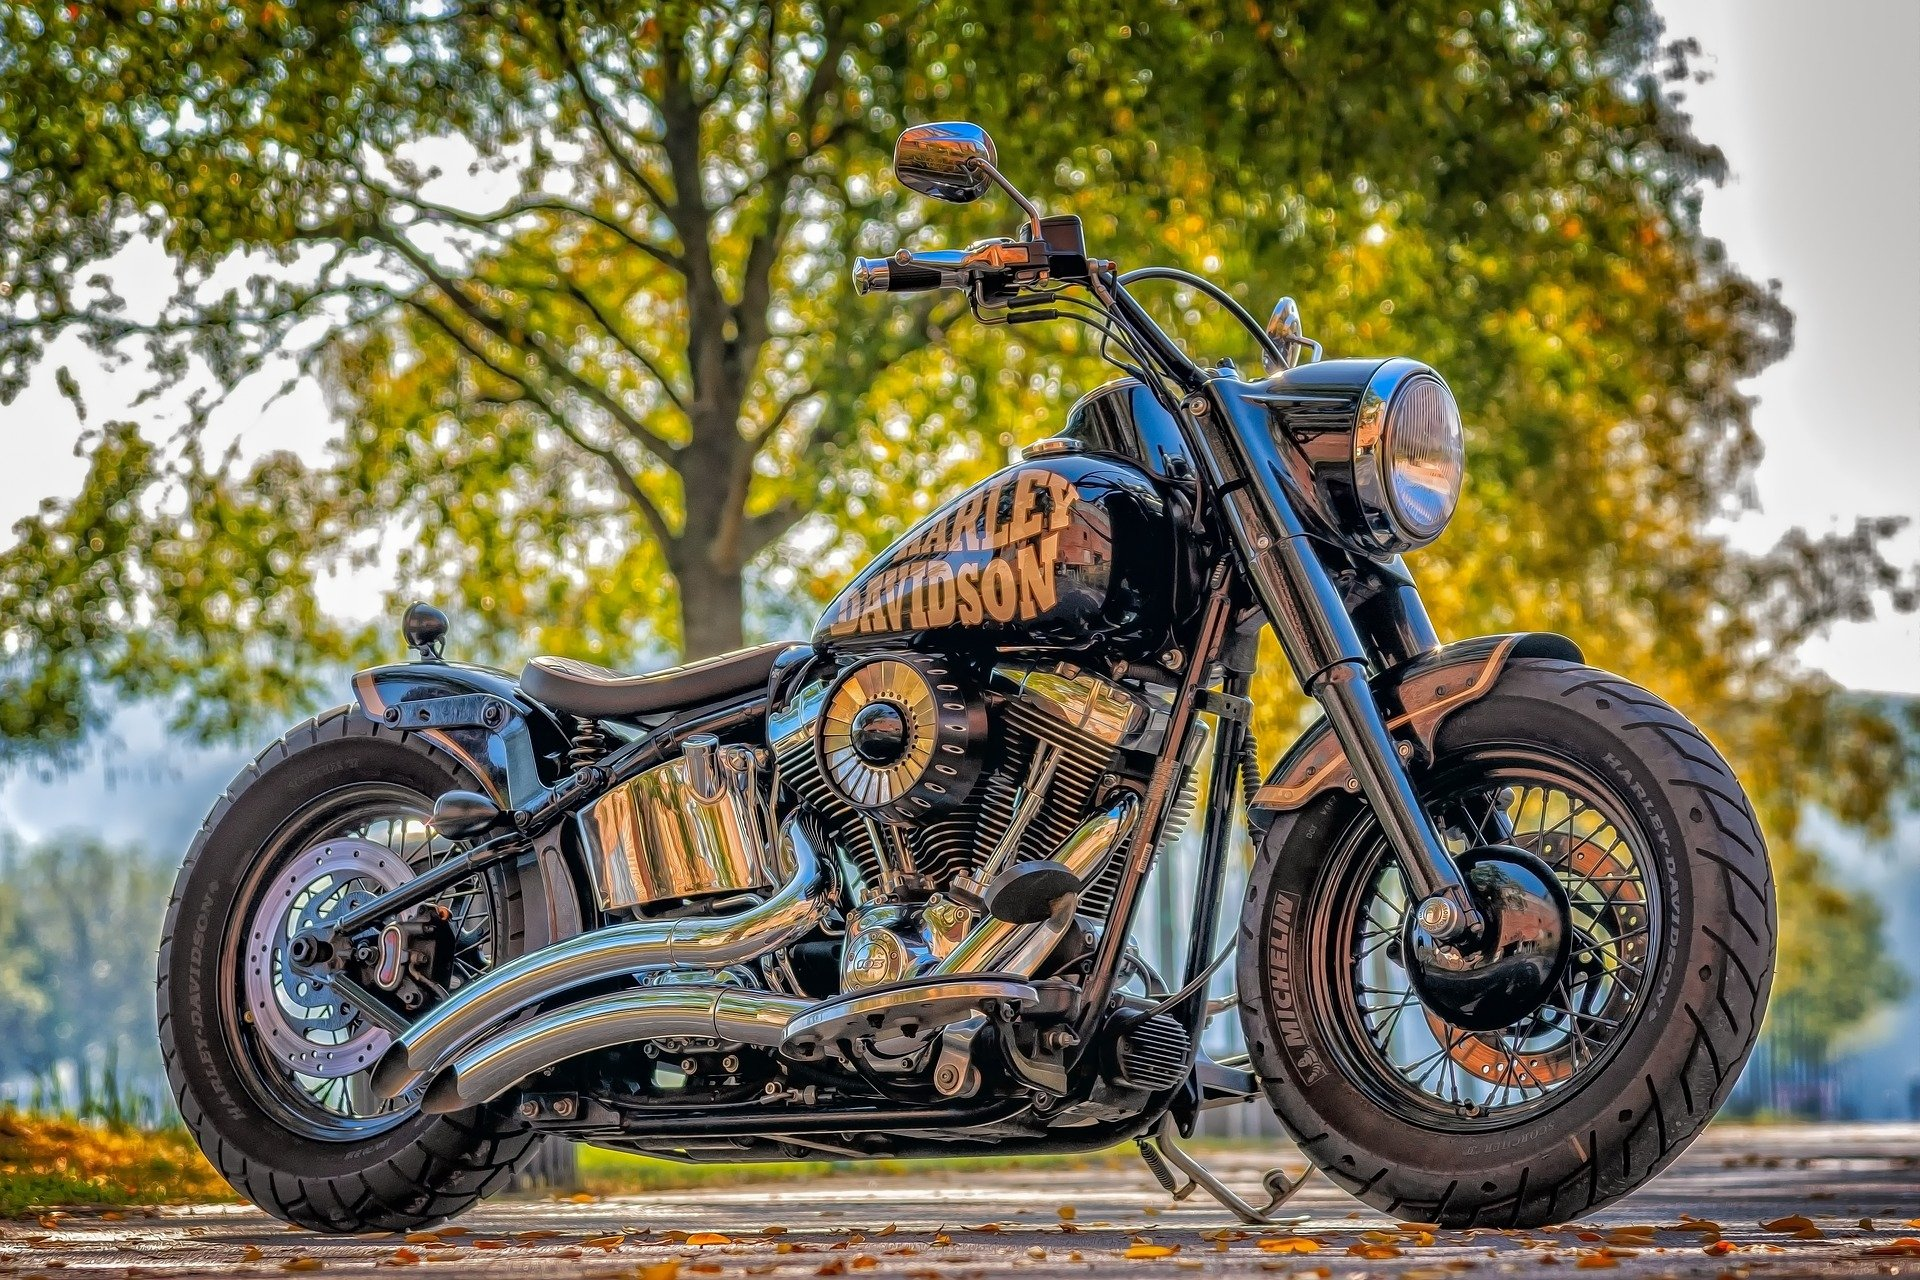 Harley Davidson leaving the country?